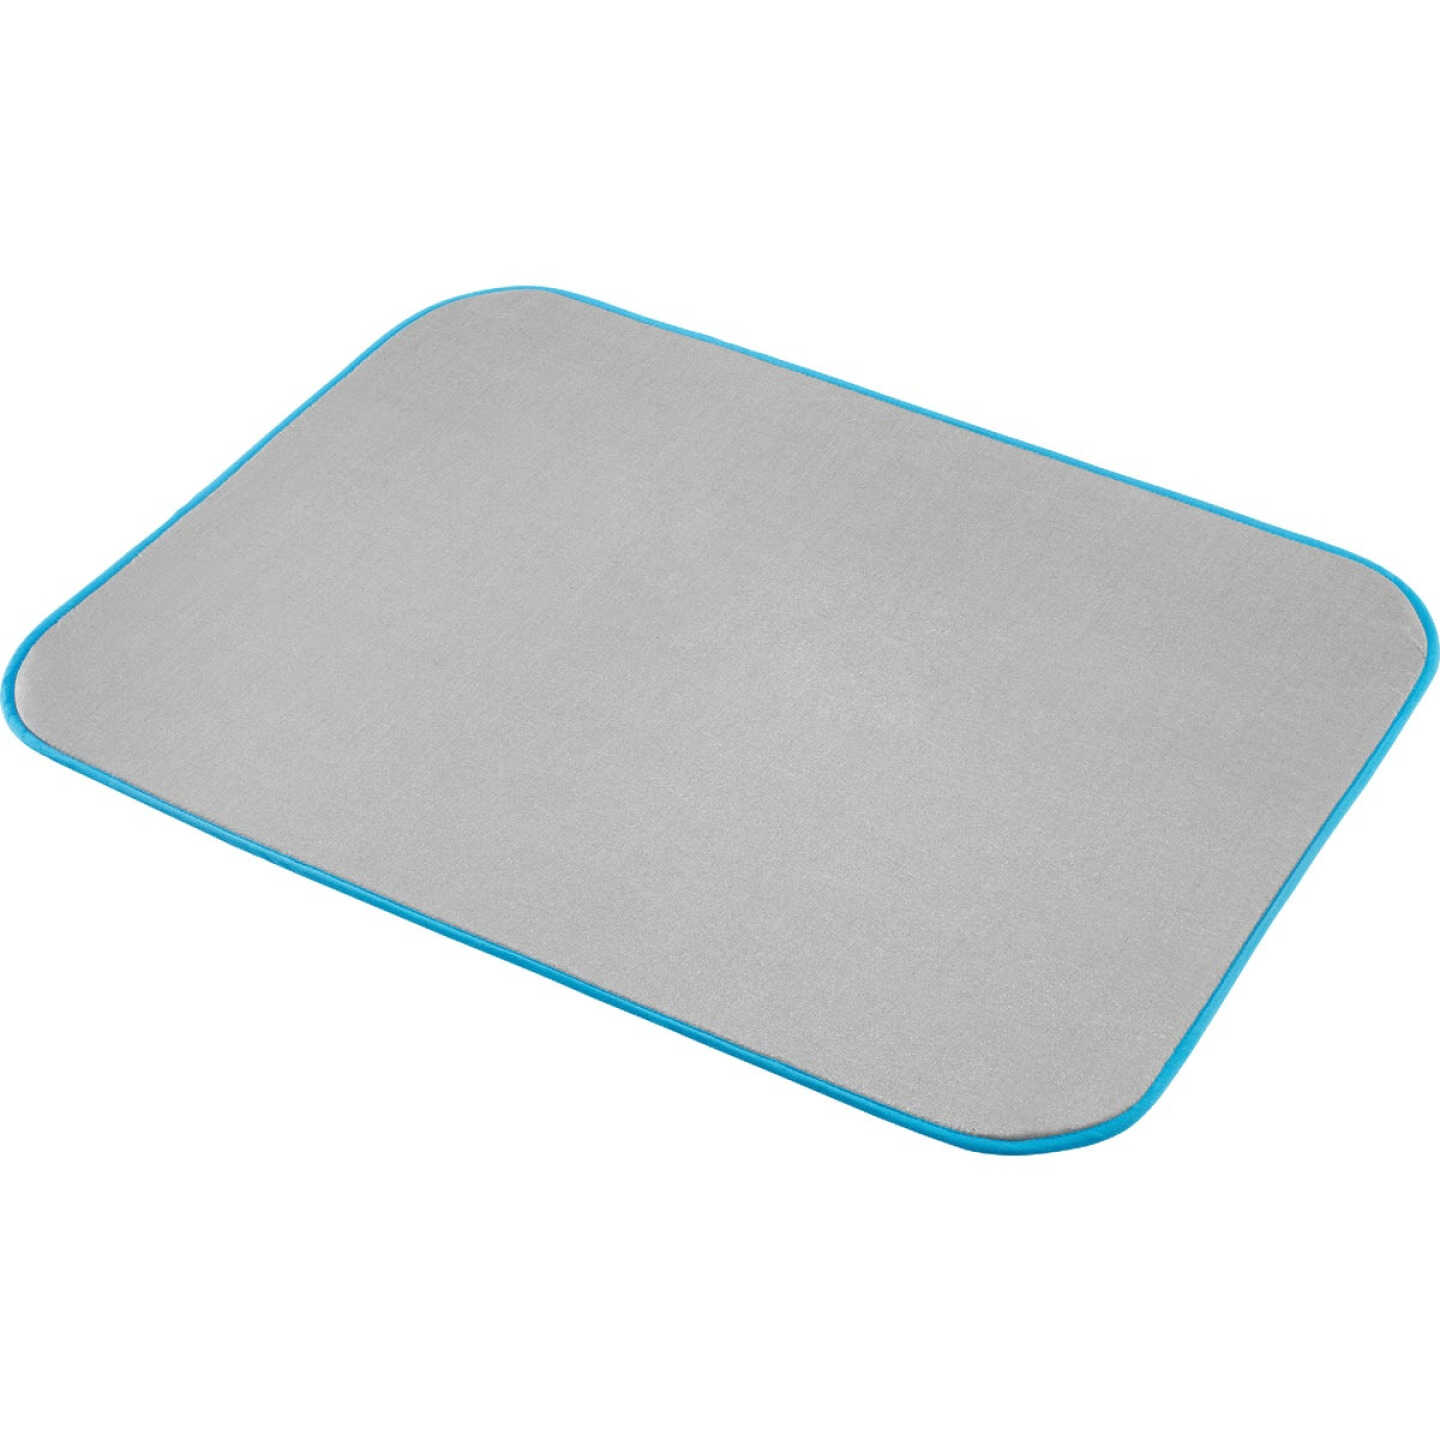 Homz 19 In. x 28 In. Portable Countertop Ironing Mat Image 1